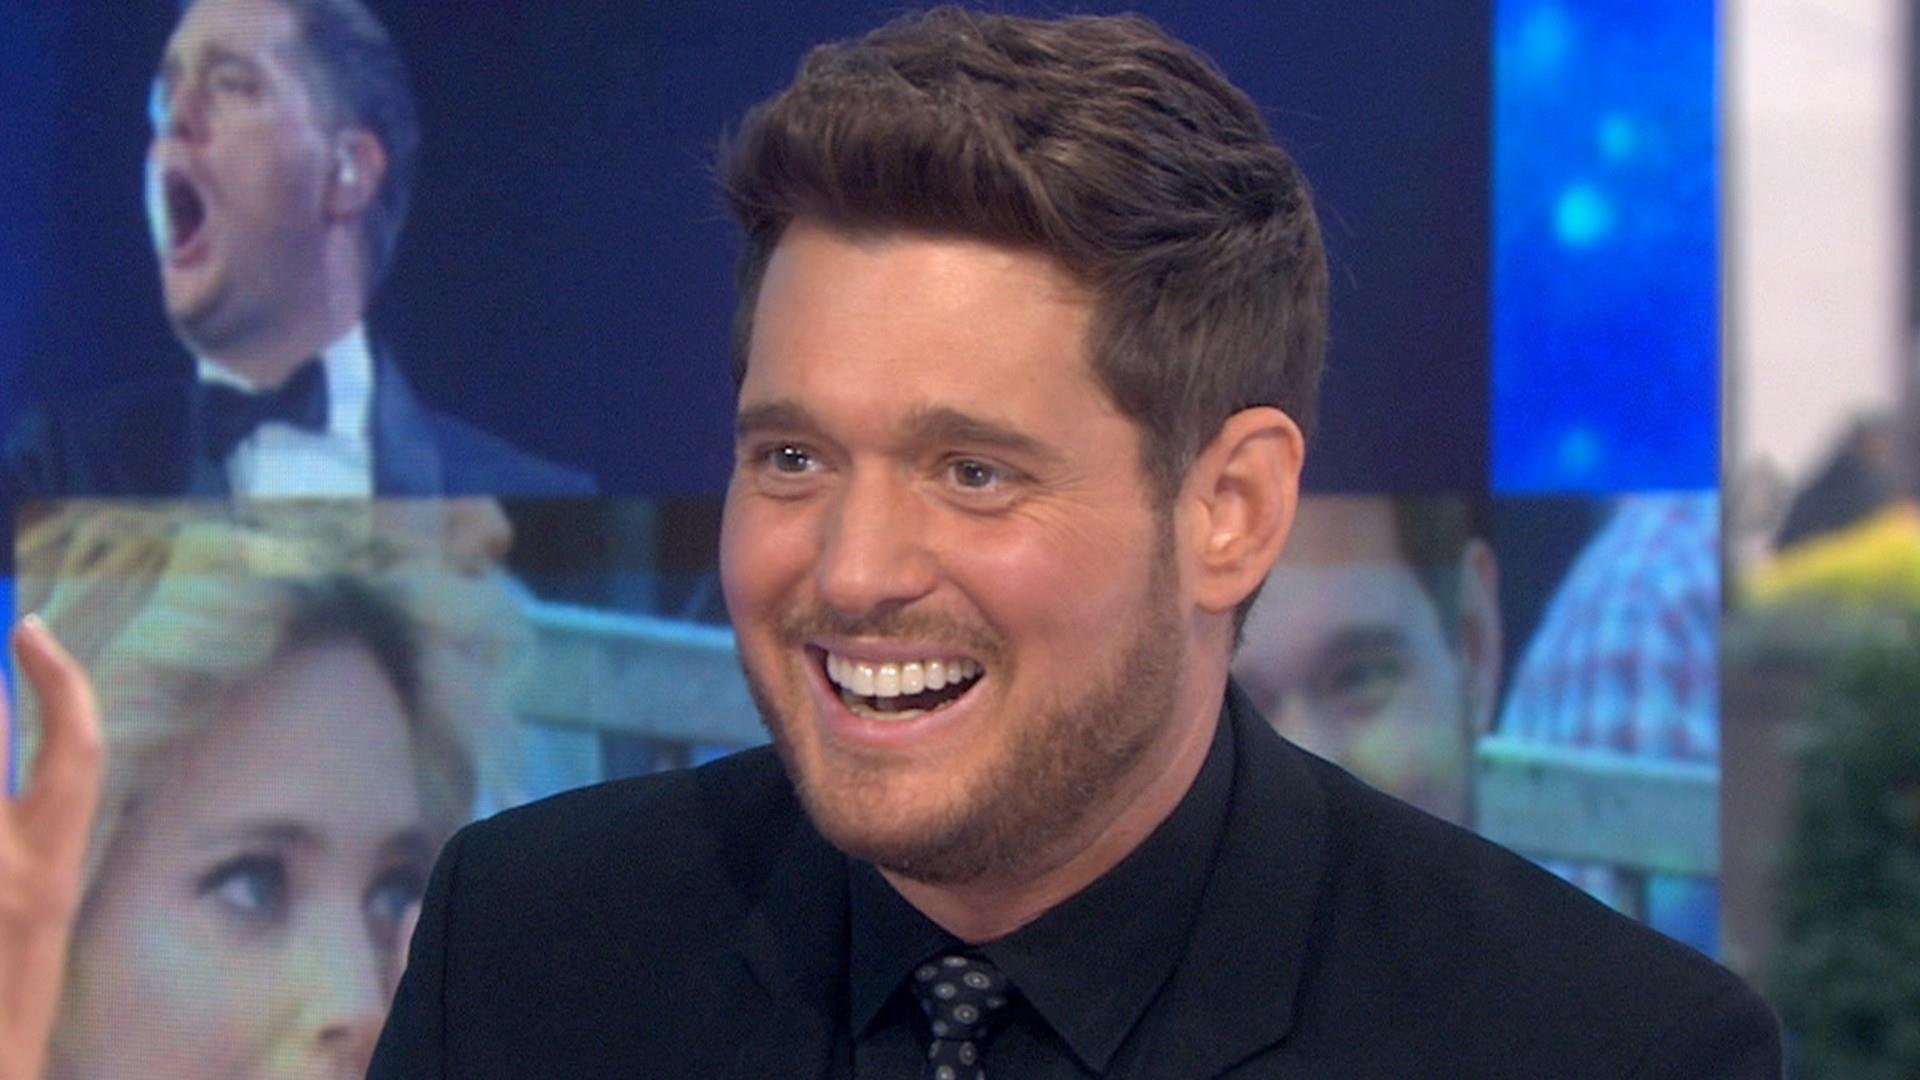 Michael Bublé Breaks Down Over Son During Carpool Karaoke Michael Bublé Breaks Down Over Son During Carpool Karaoke new photo